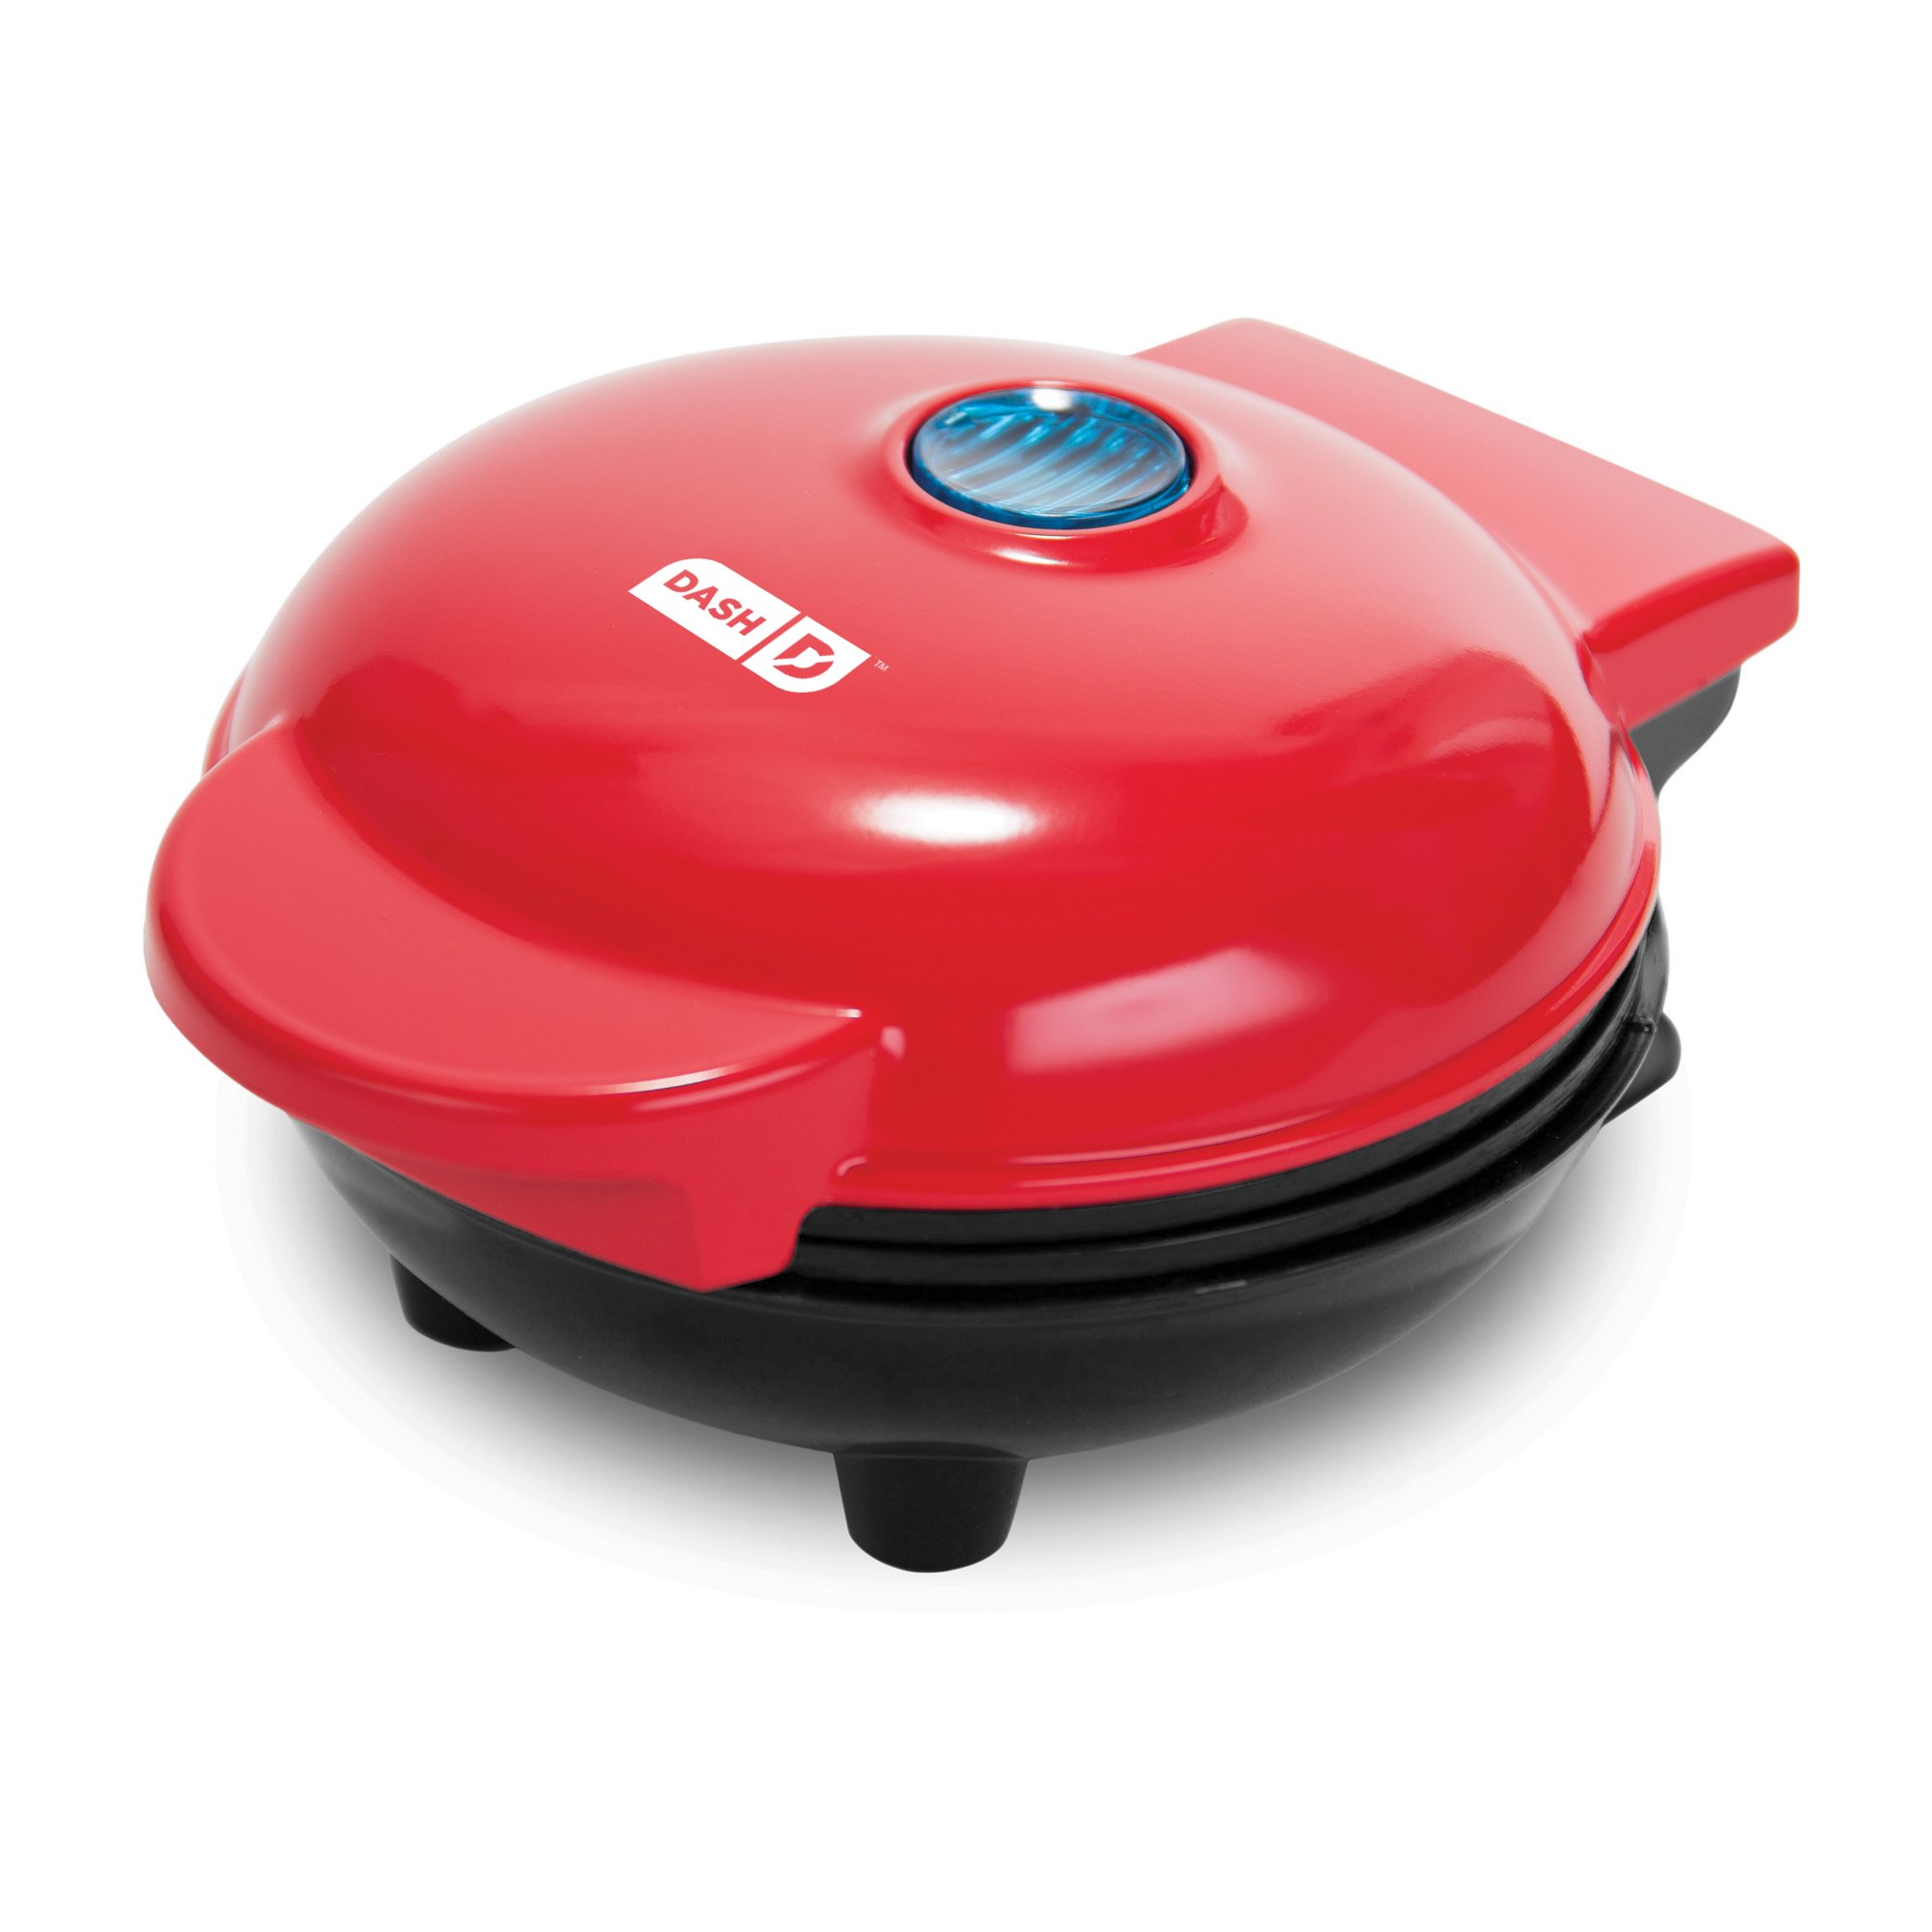 Dash DMS001RD Mini Maker - Griddle, Red